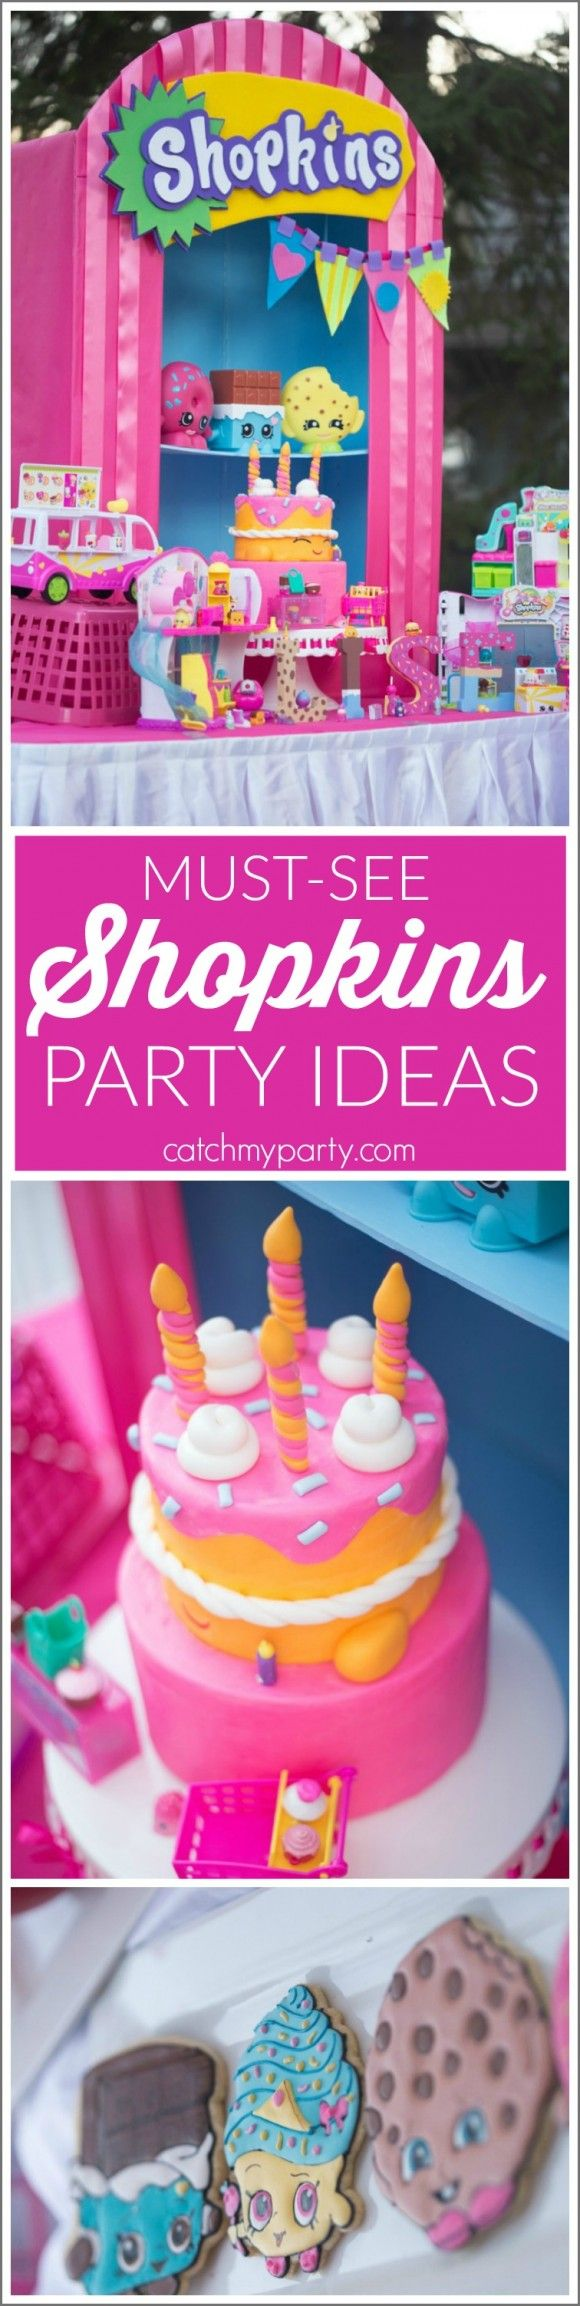 incredible shopkins party ideas including dessert table cake cookies decor and more - Decor And More